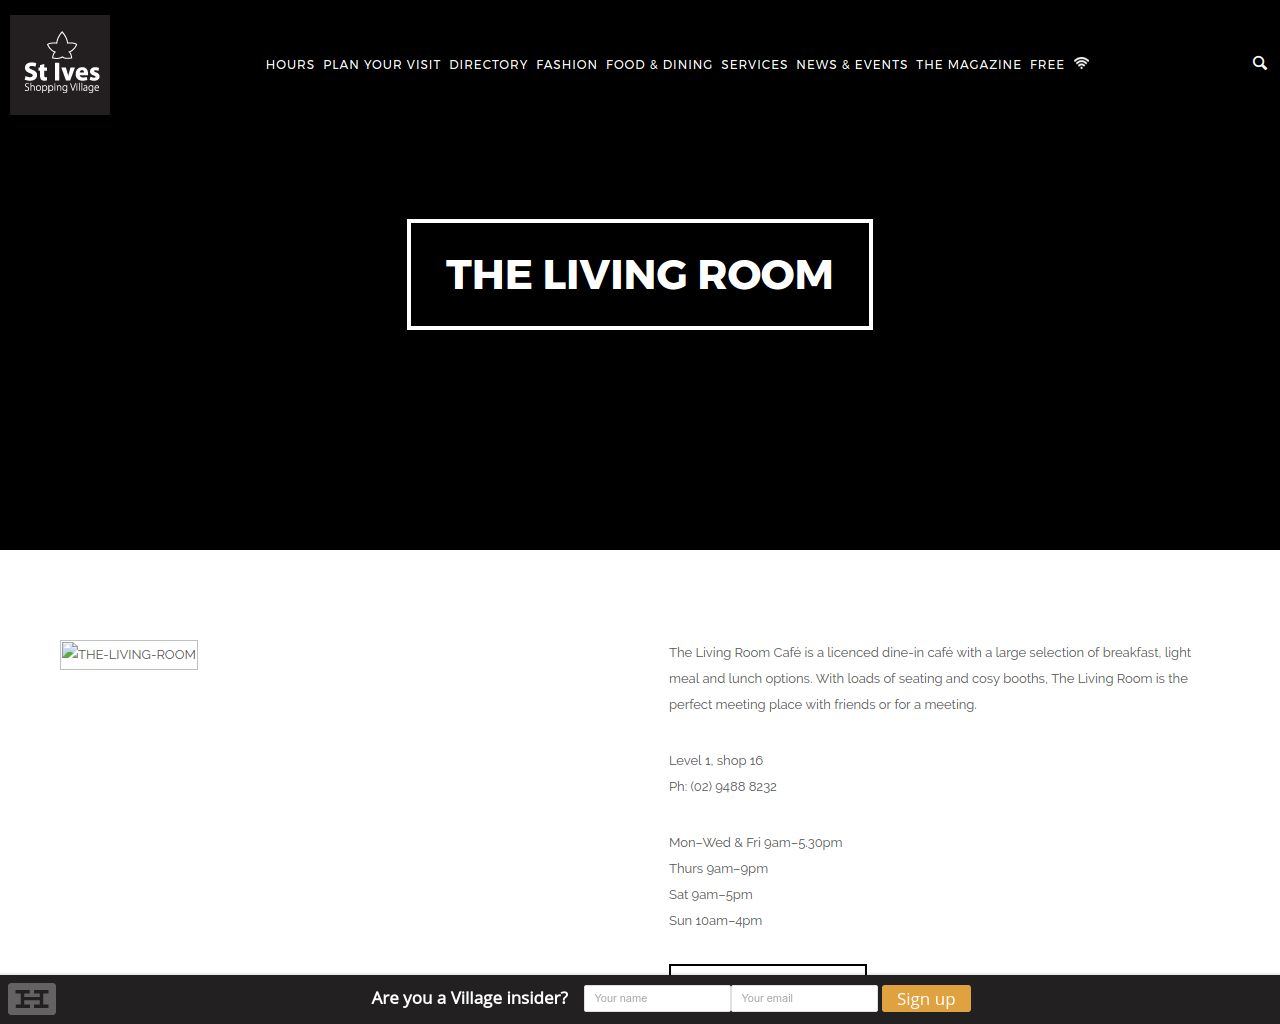 Website THE LIVING ROOM CAFE